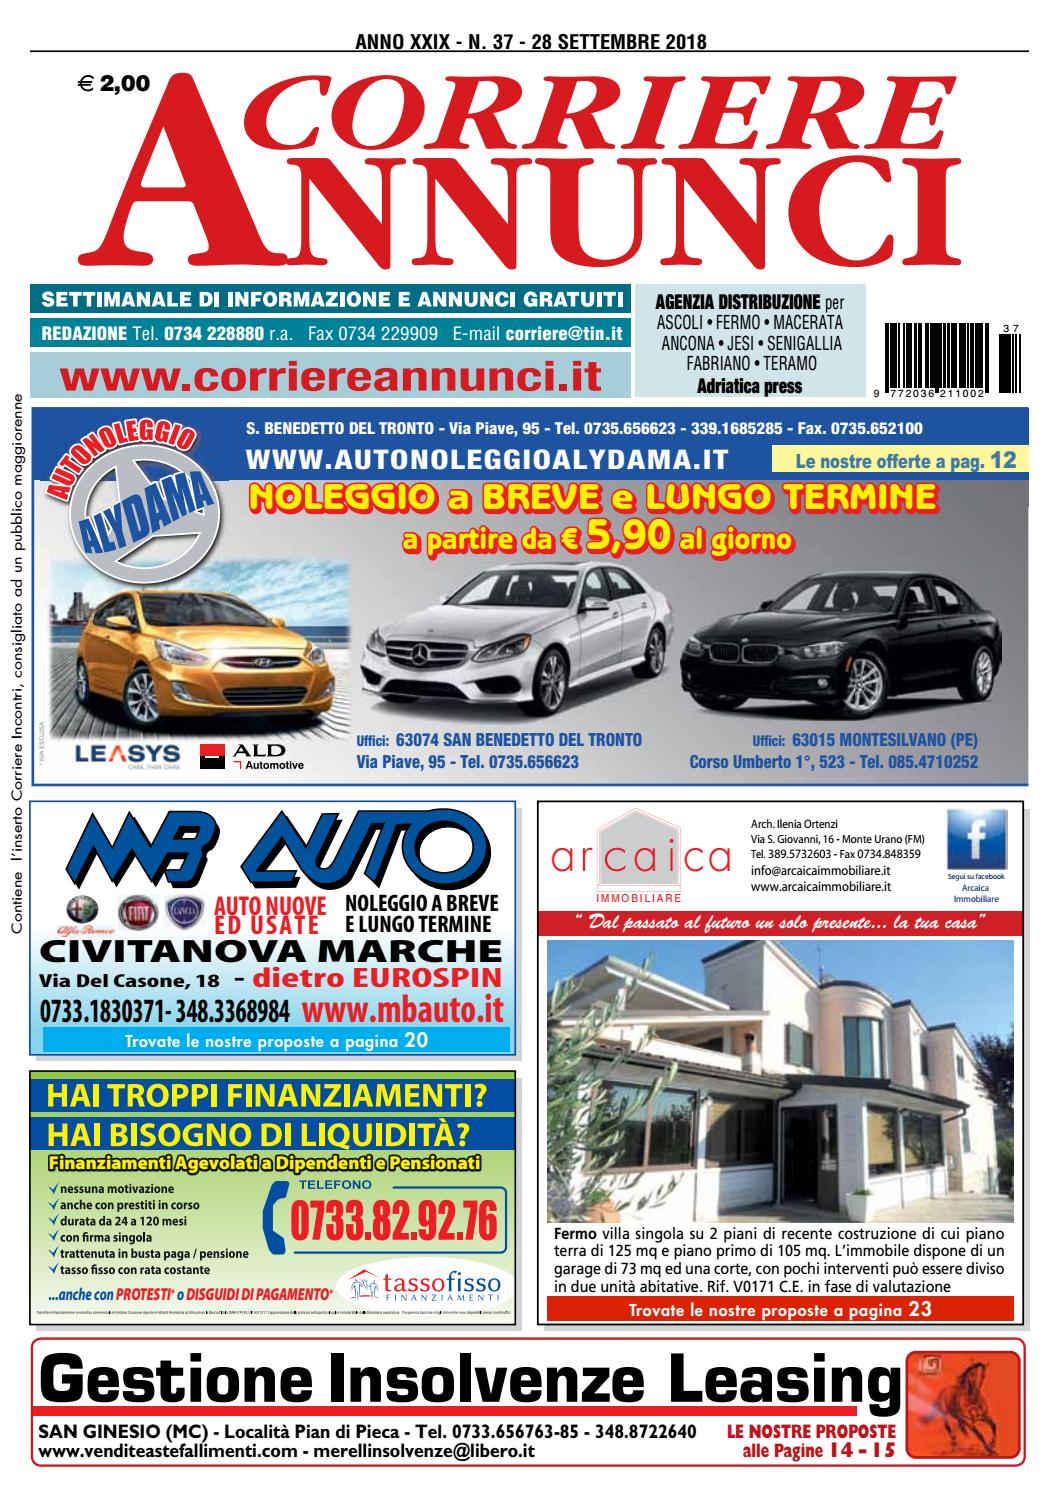 Corriere 37-2018 by Corriere Annunci - issuu bd7be515574